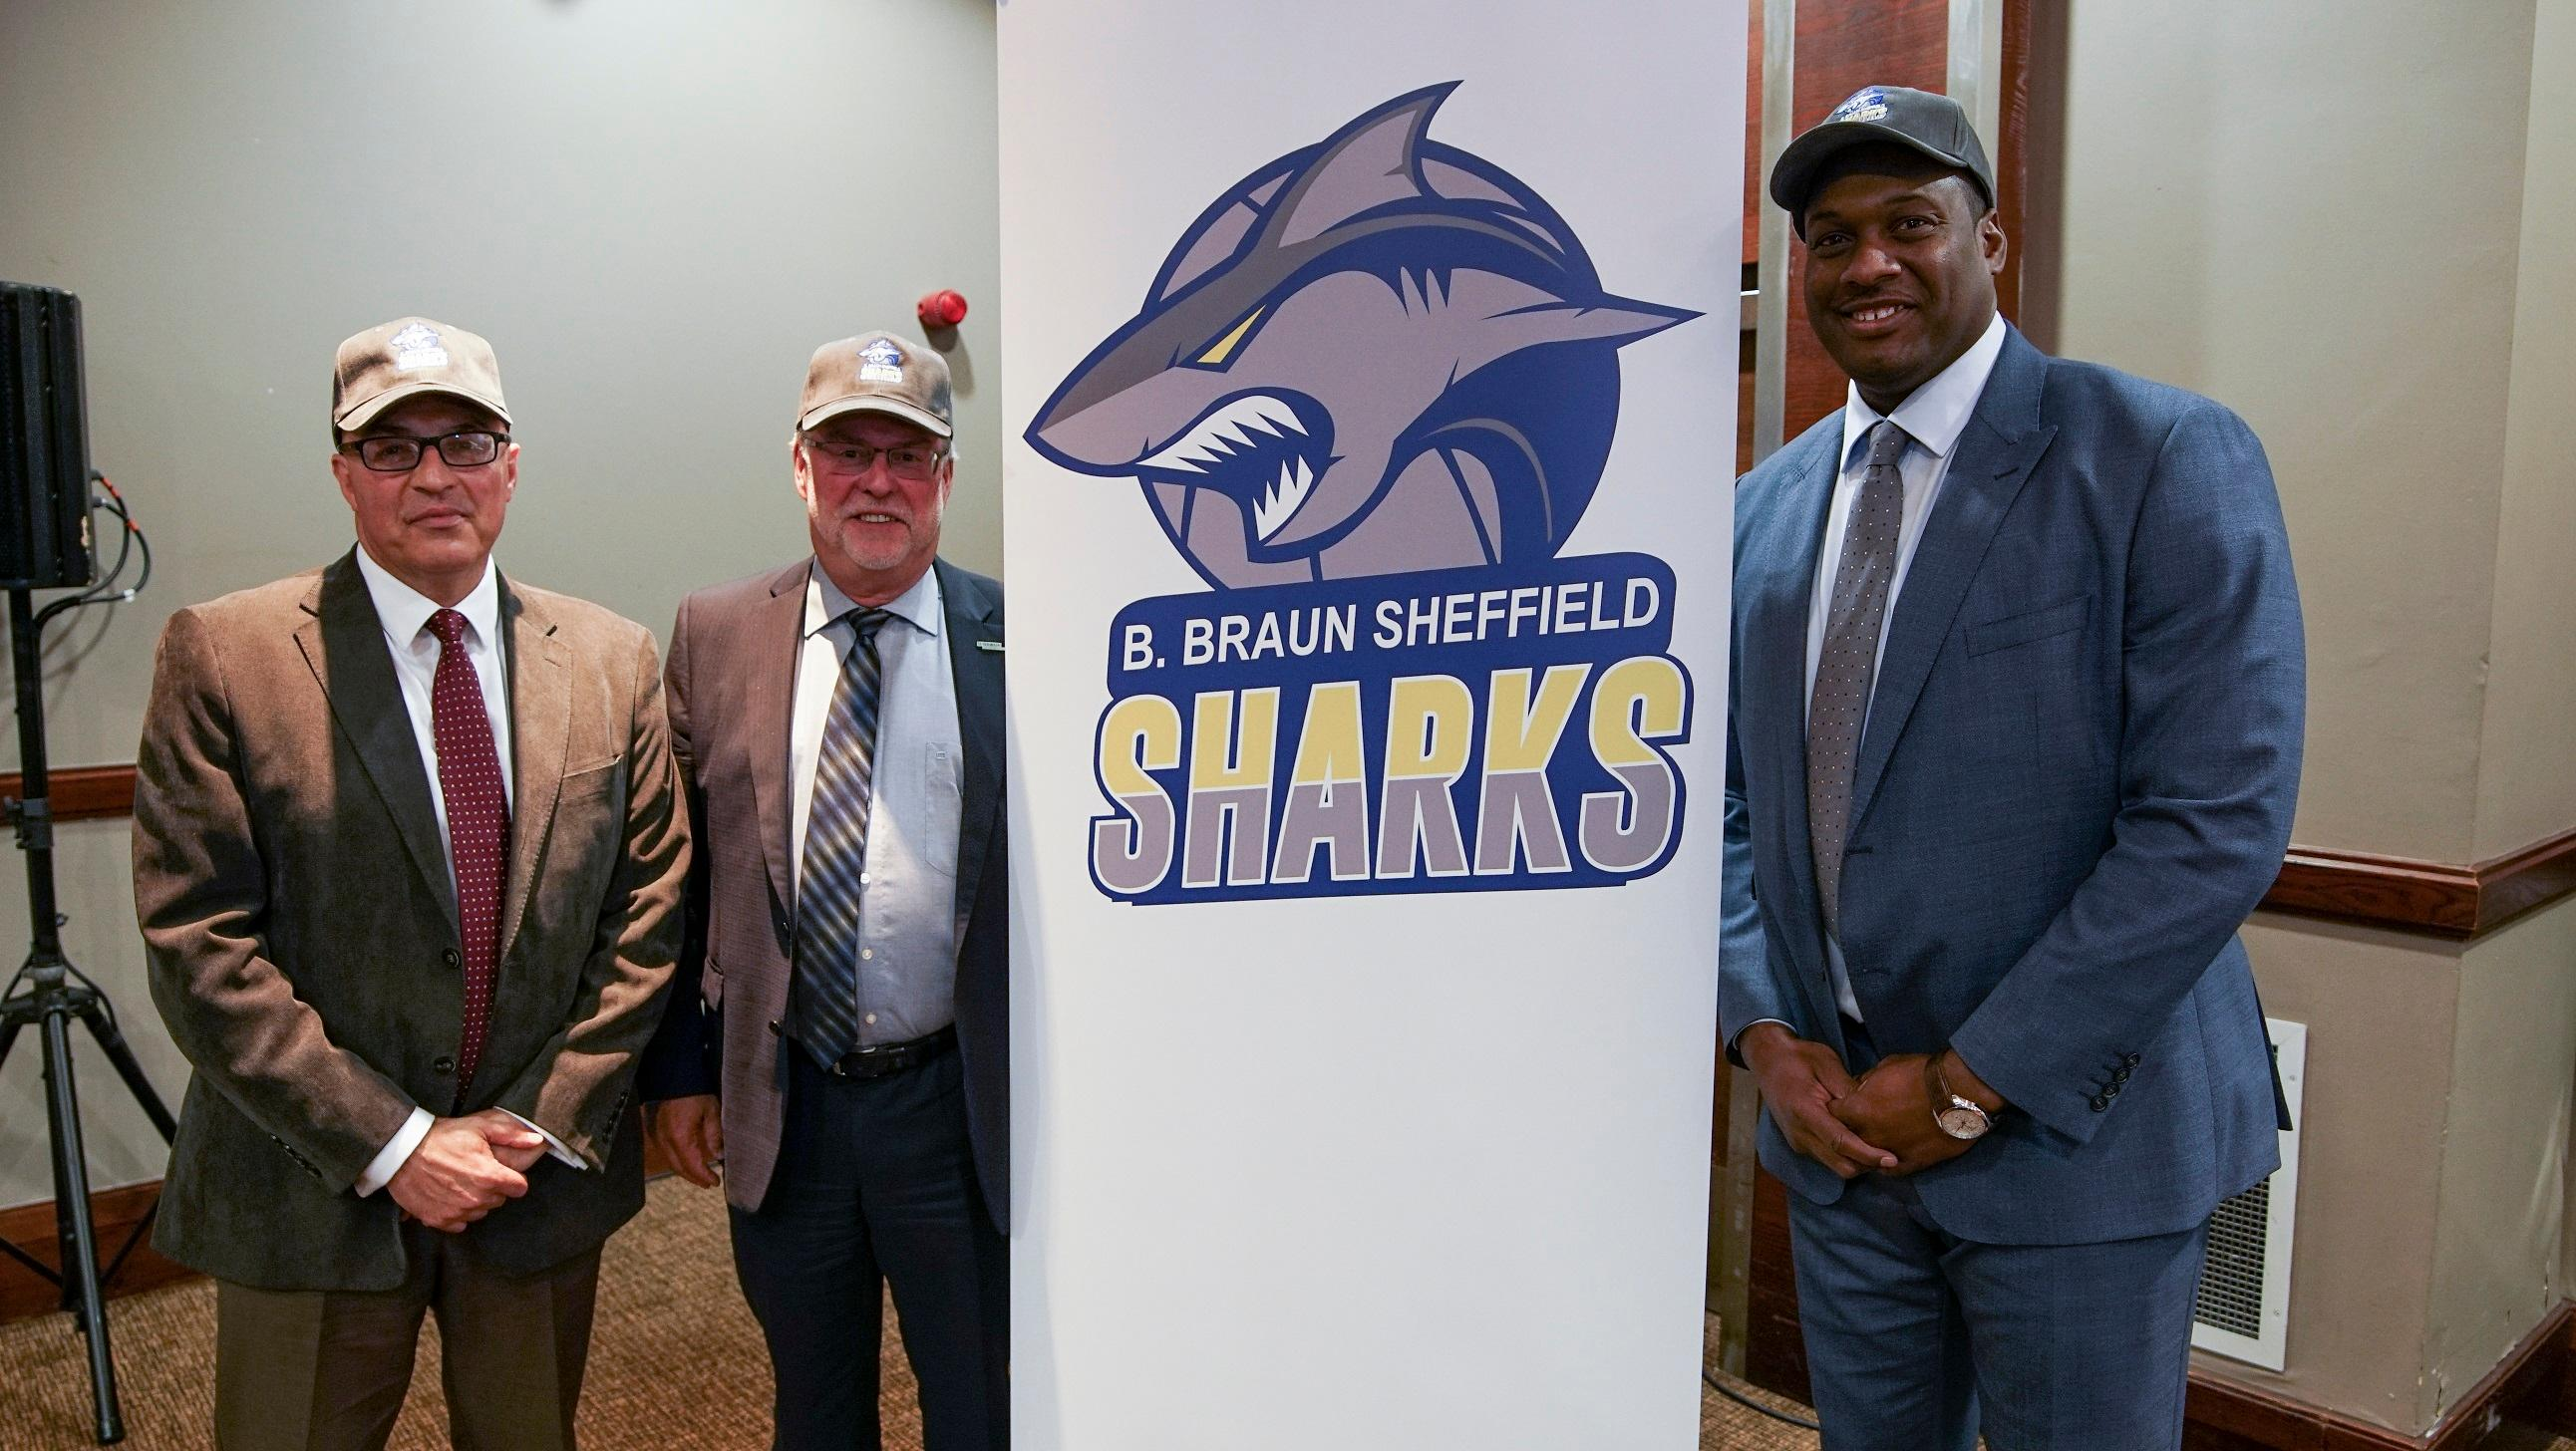 Sheffield Sharks add Braun with new naming rights | The Star